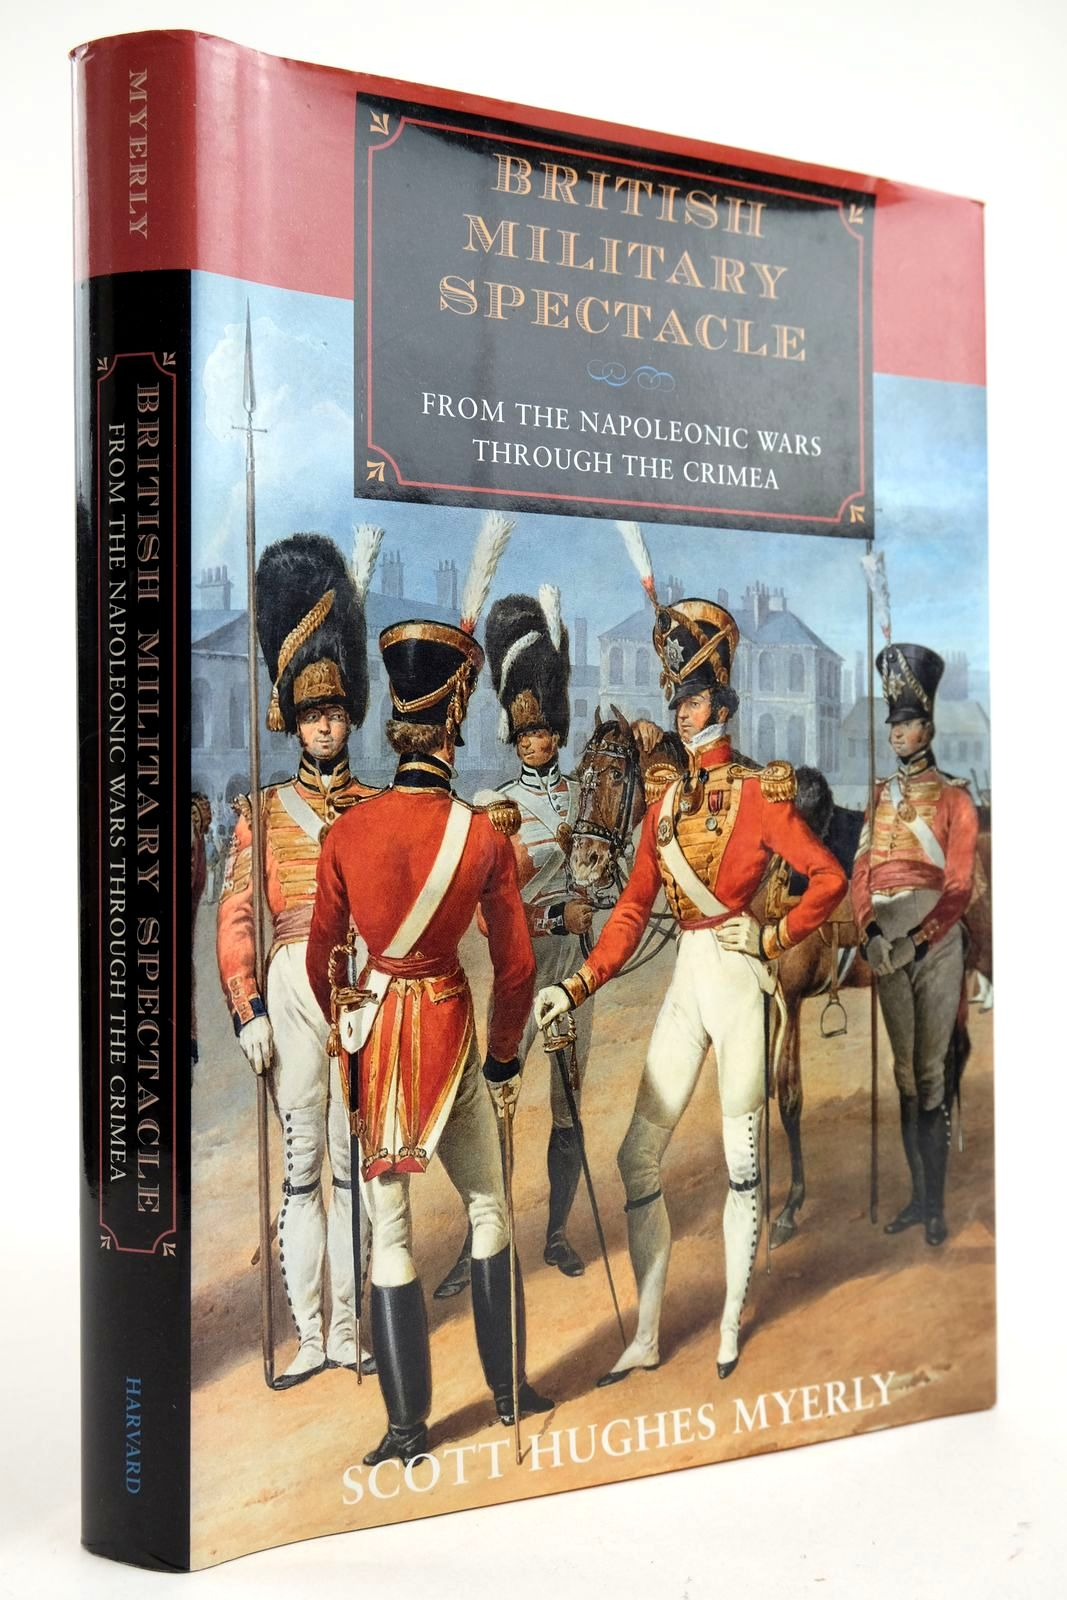 Photo of BRITISH MILITARY SPECTACLE FROM THE NAPOLEONIC WARS THROUGH THE CRIMEA- Stock Number: 2132896